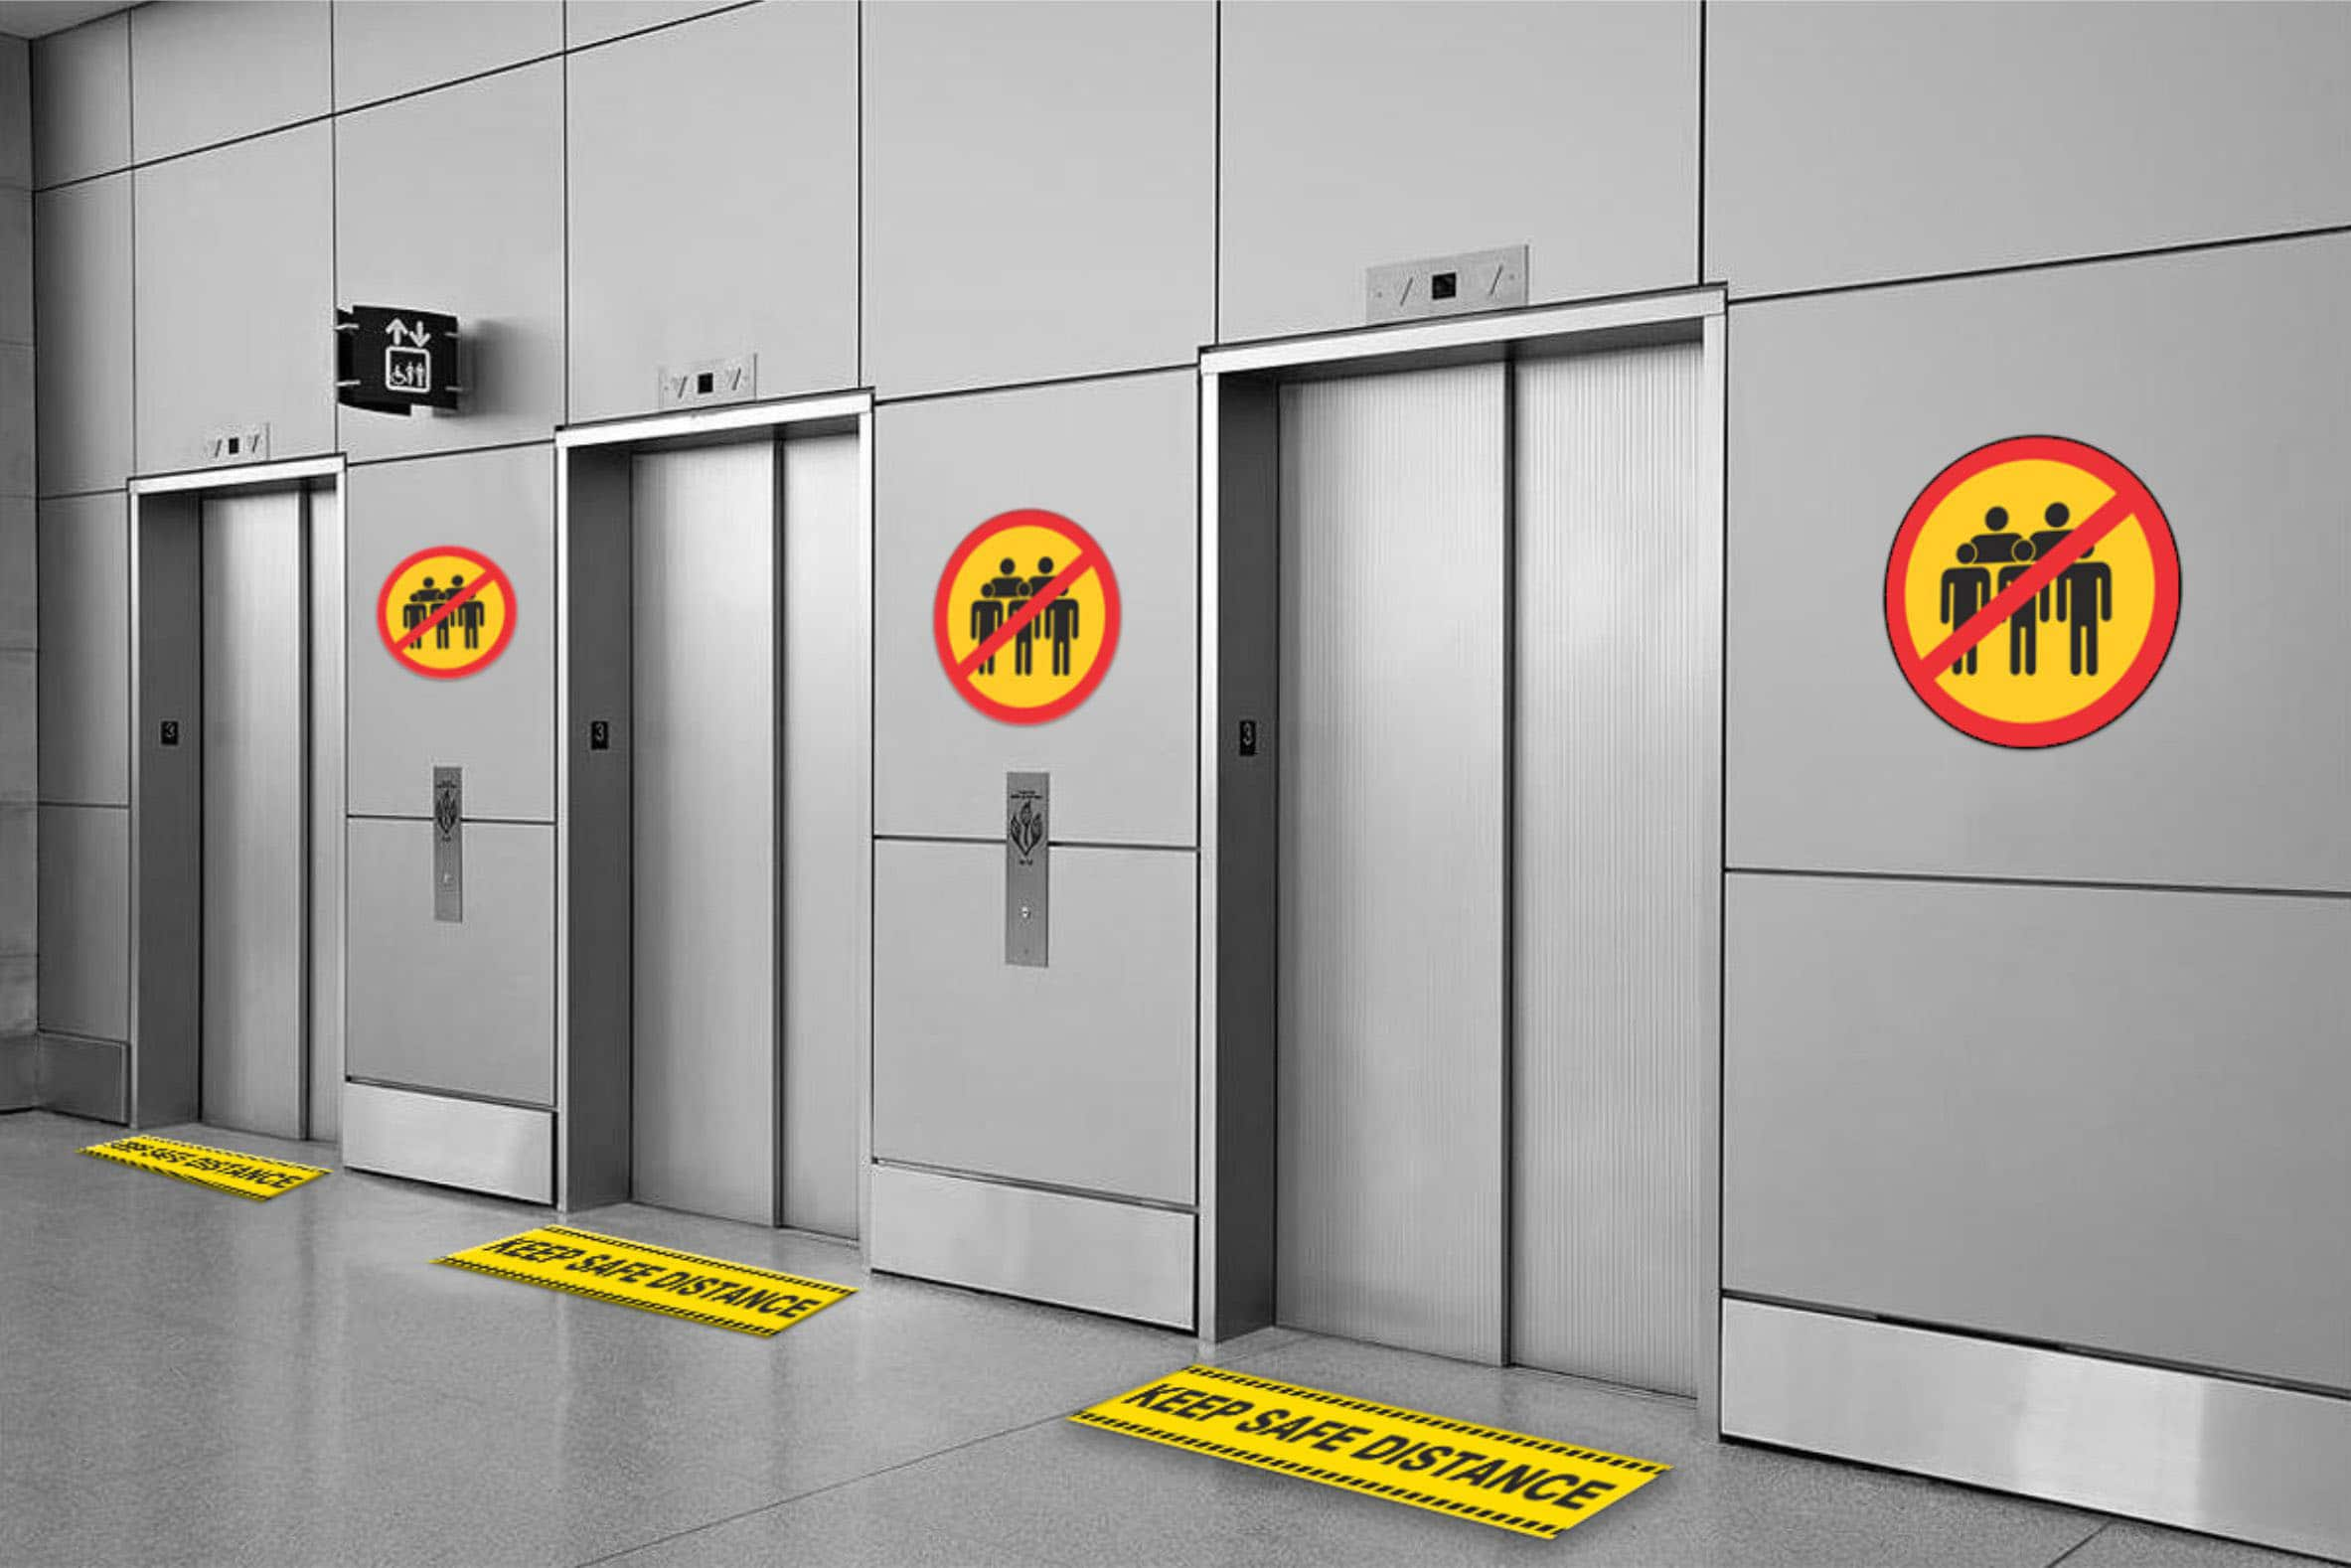 wall and floor stickers asking people to keep distance and avoid crowding in a lift